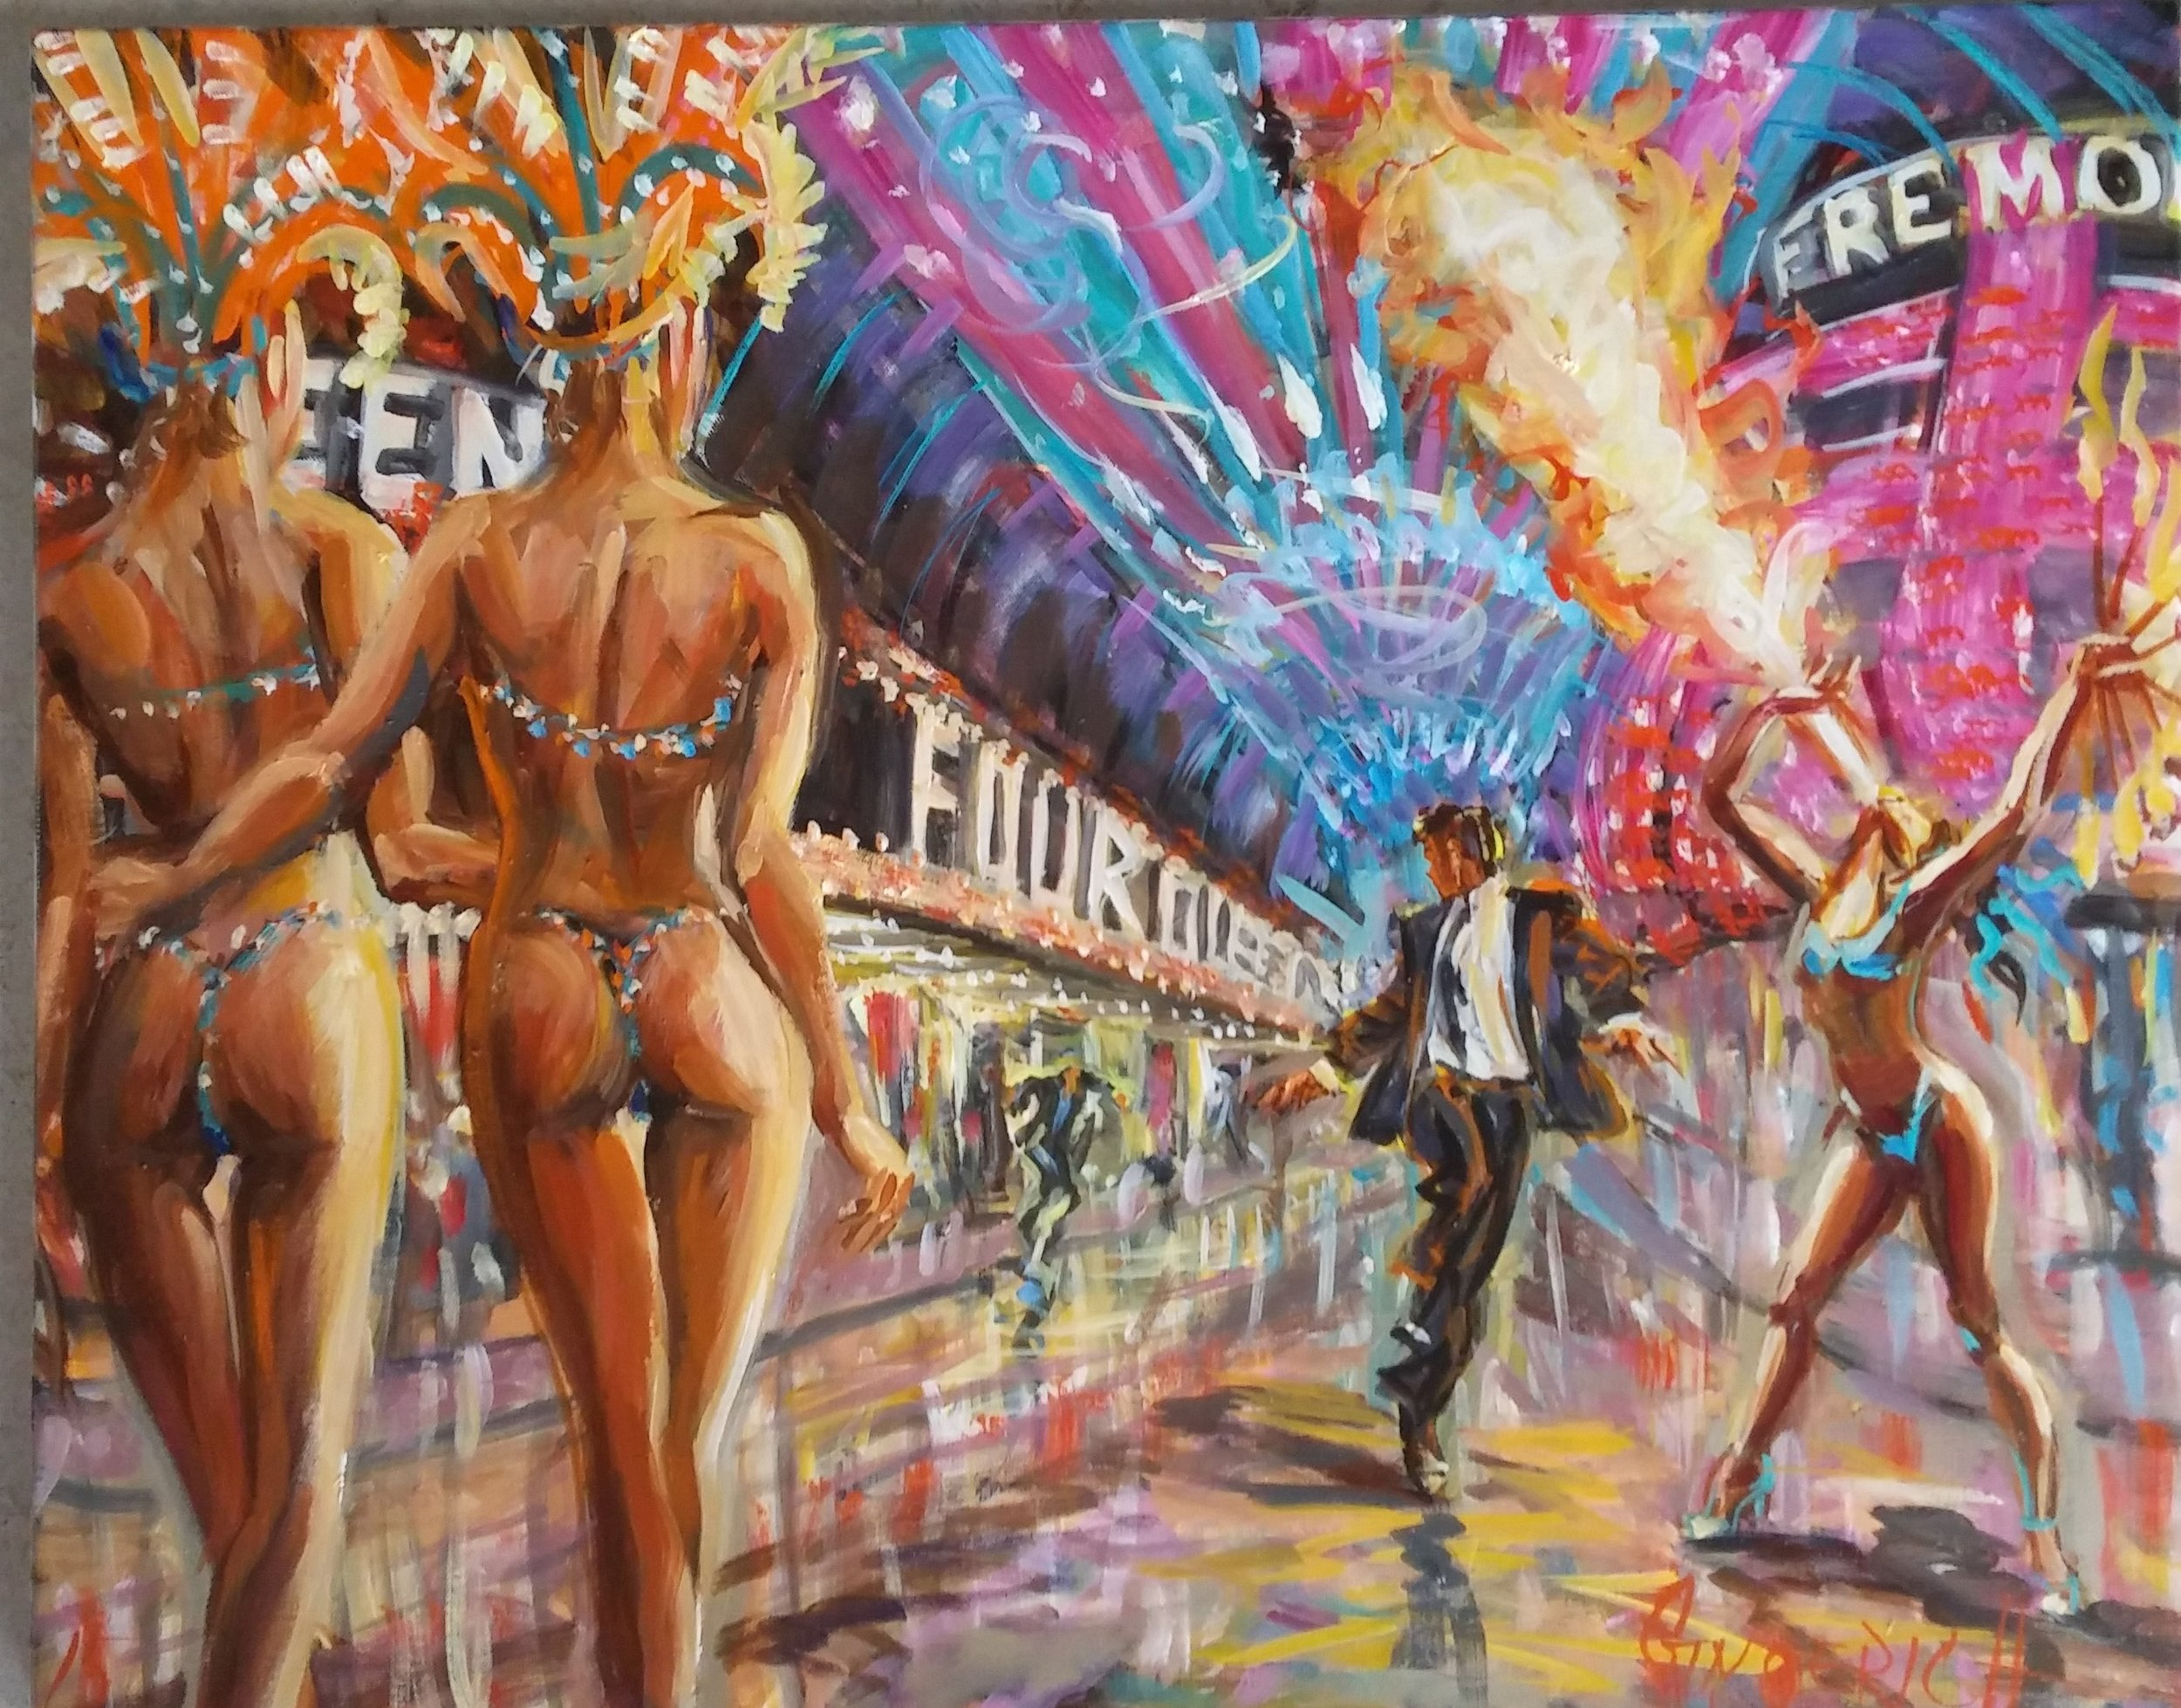 Show Girls on an Off Night  24 x 30 inches, oil on canvas